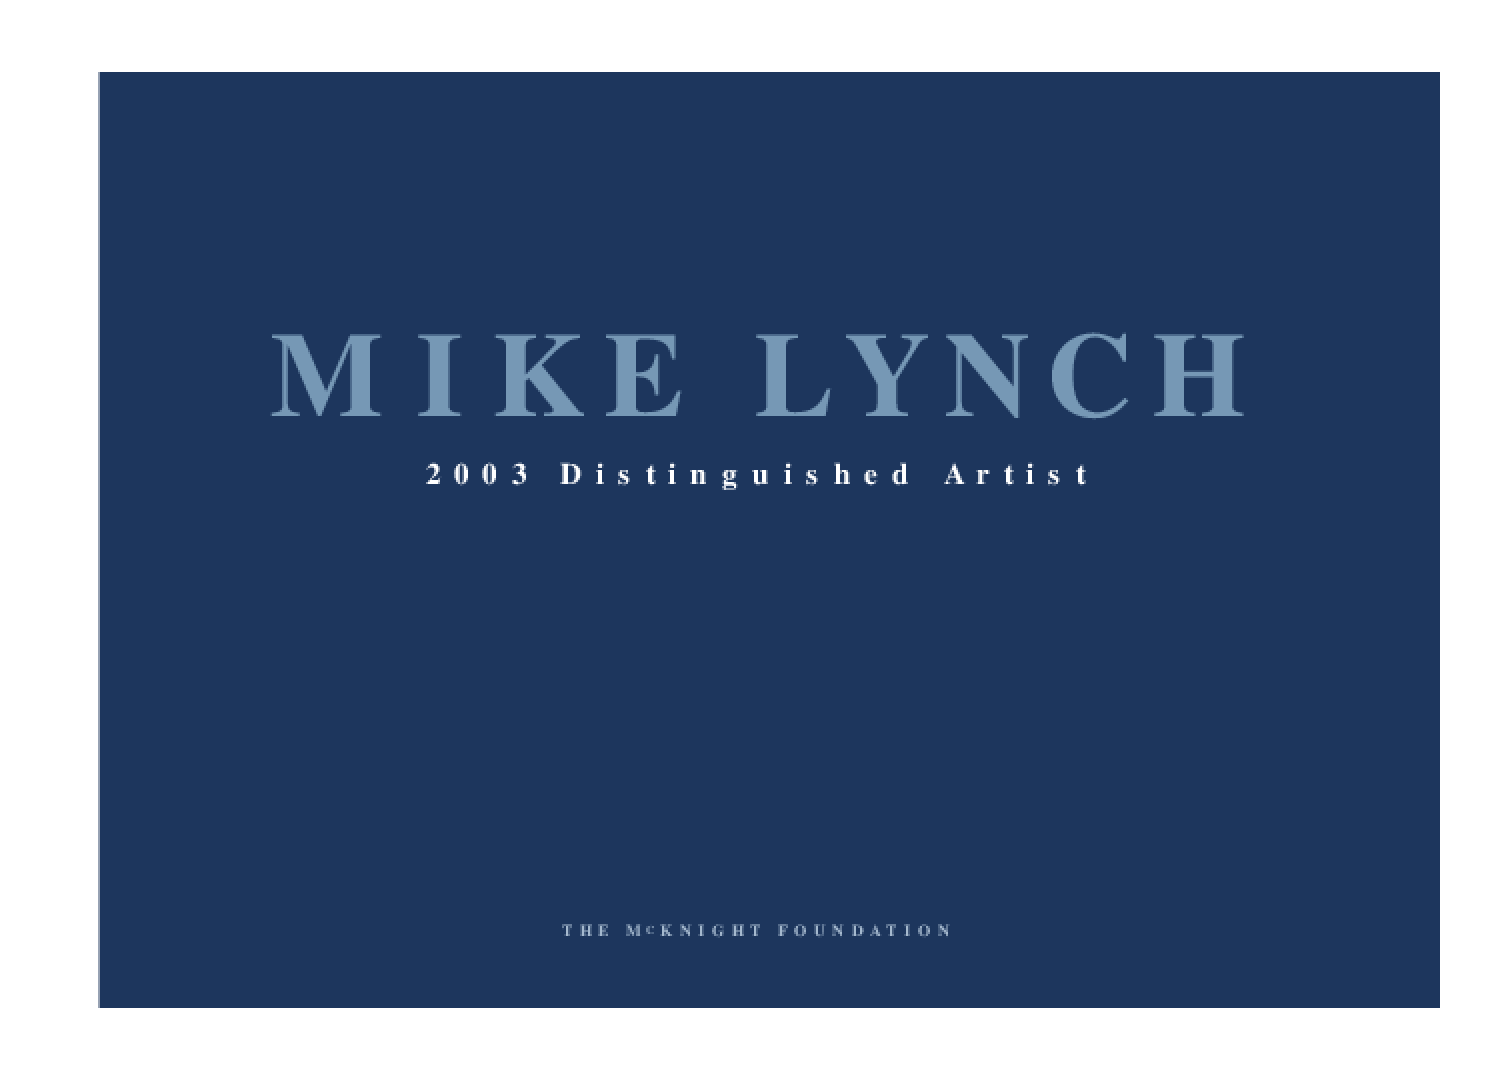 Mike Lynch: 2003 Distinguished Artist